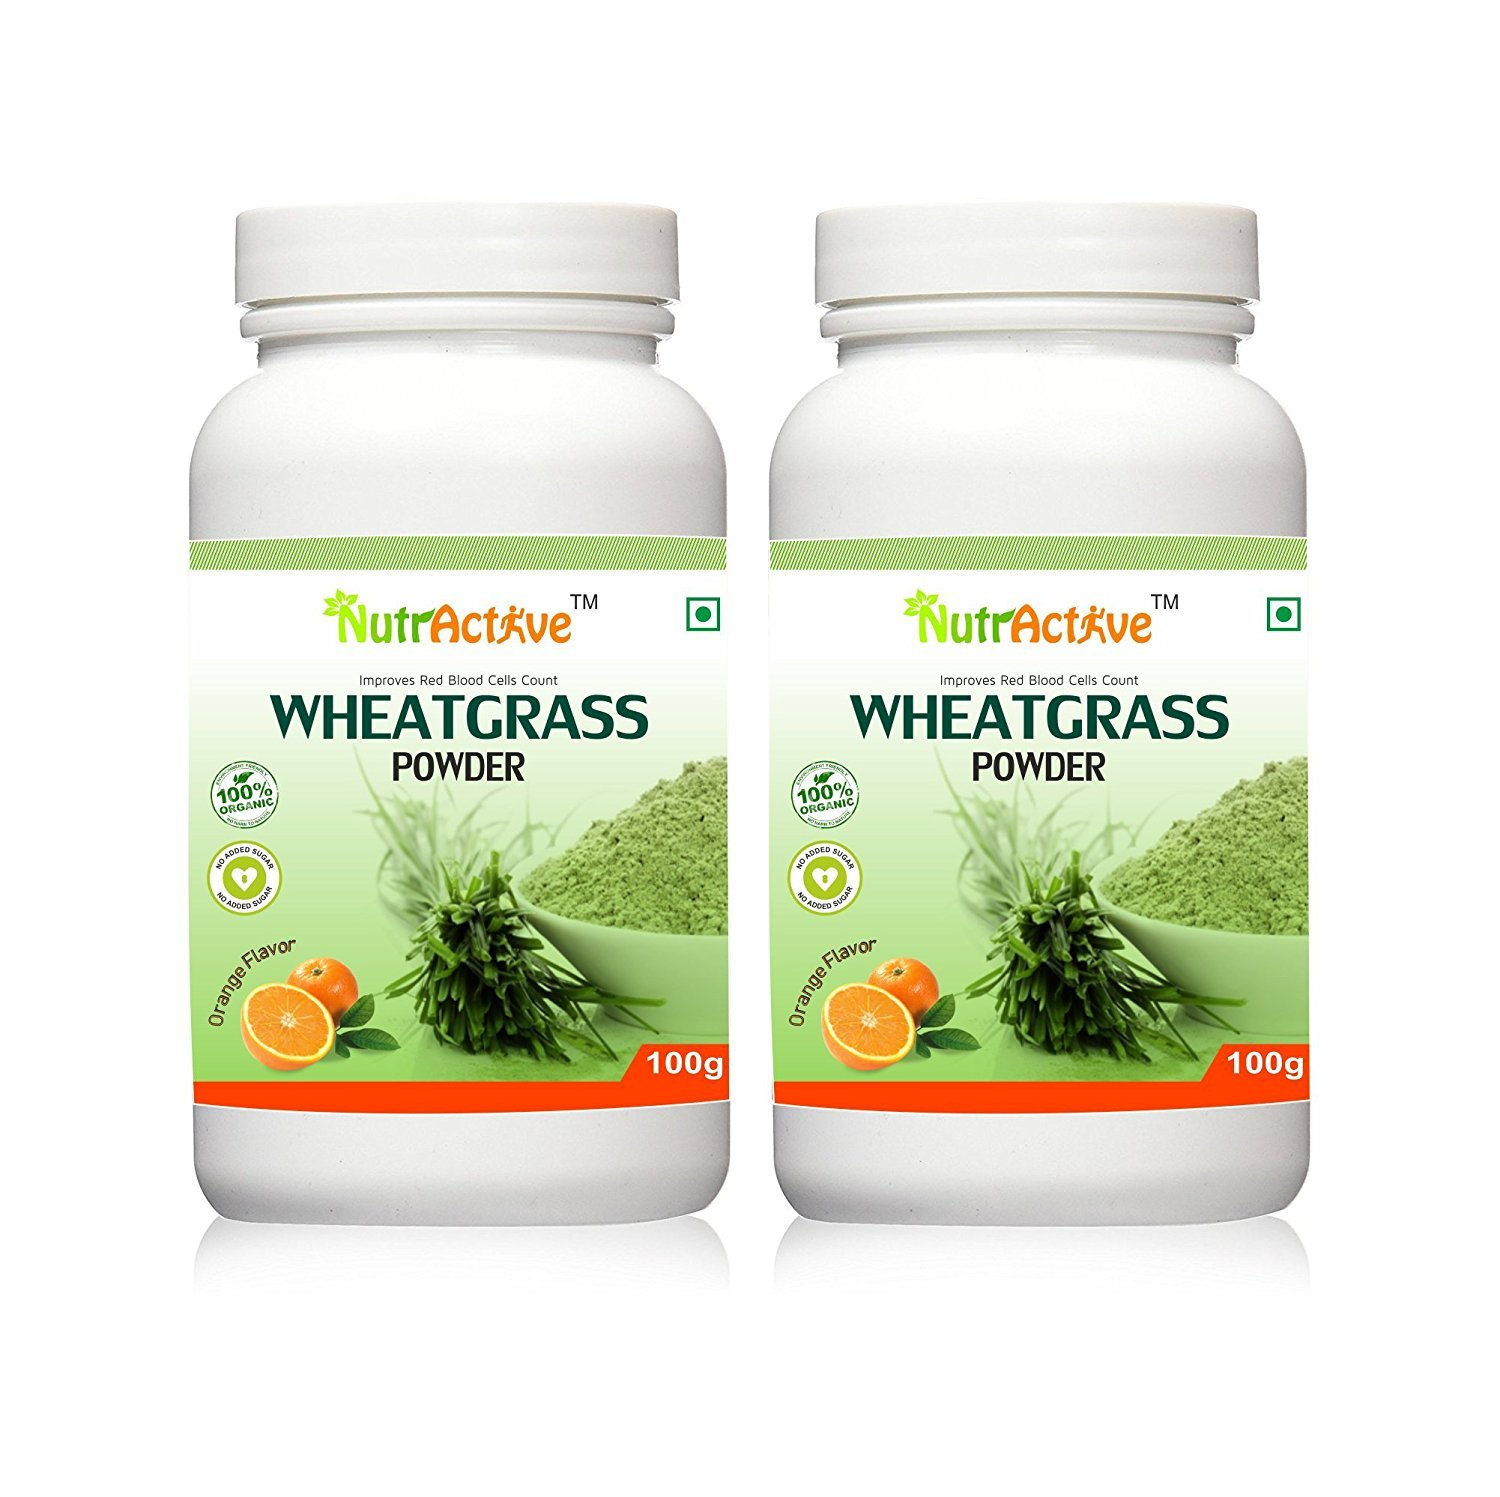 NutrActive Organic Wheatgrass Powder with Orange Flavor - 100 gm (Pack of 2)